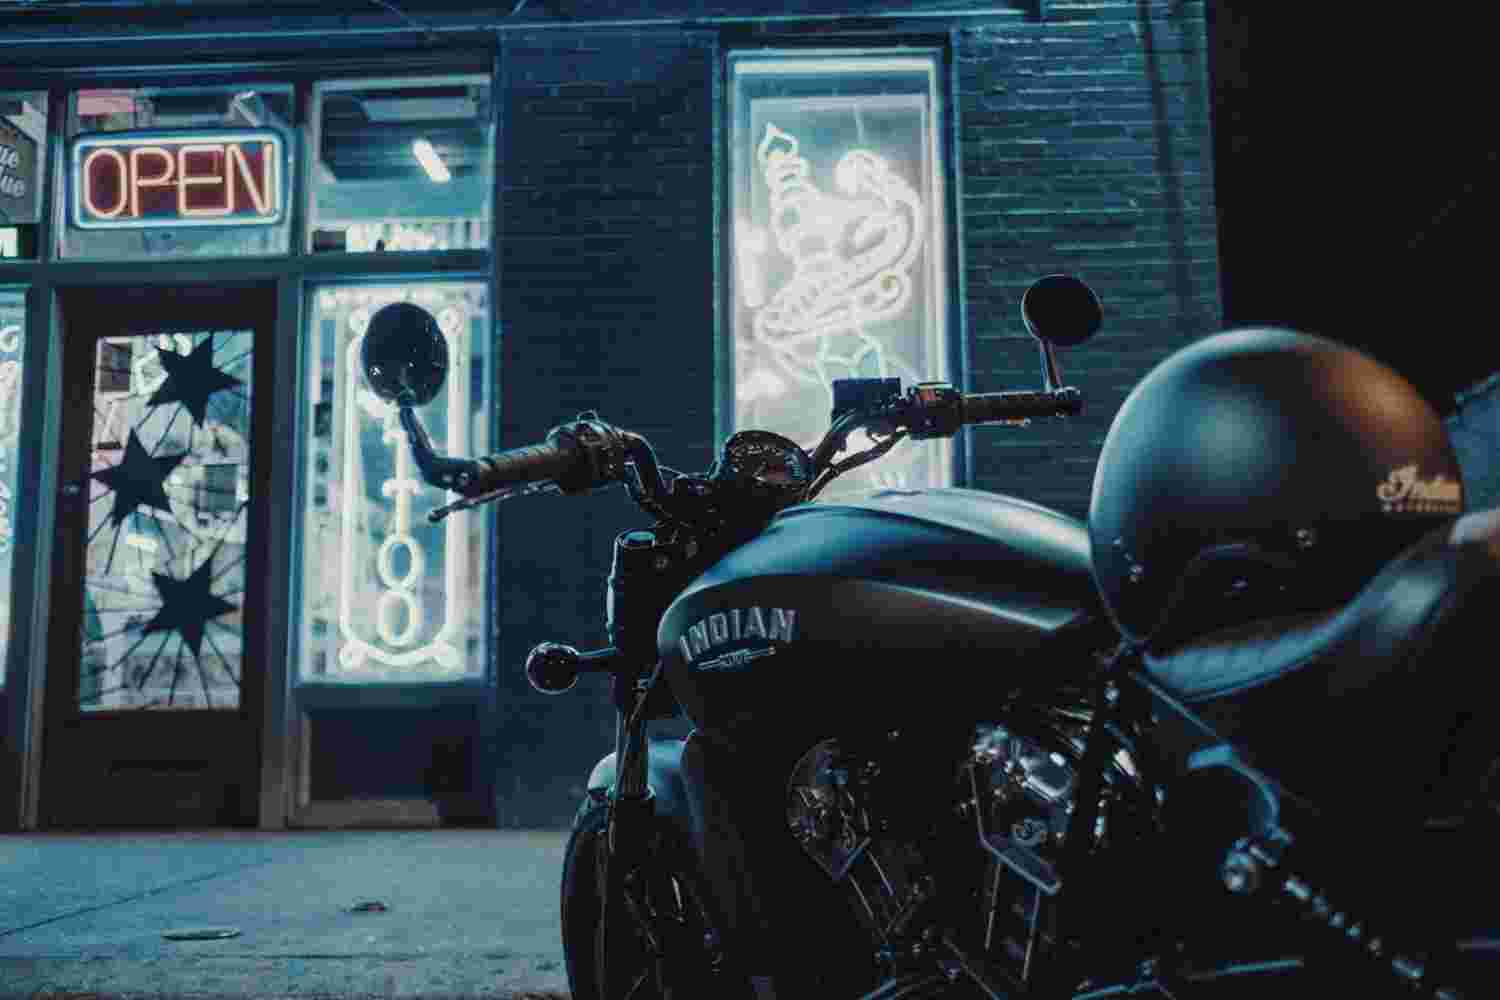 Deanbradshaw Indianmotorcycles 35